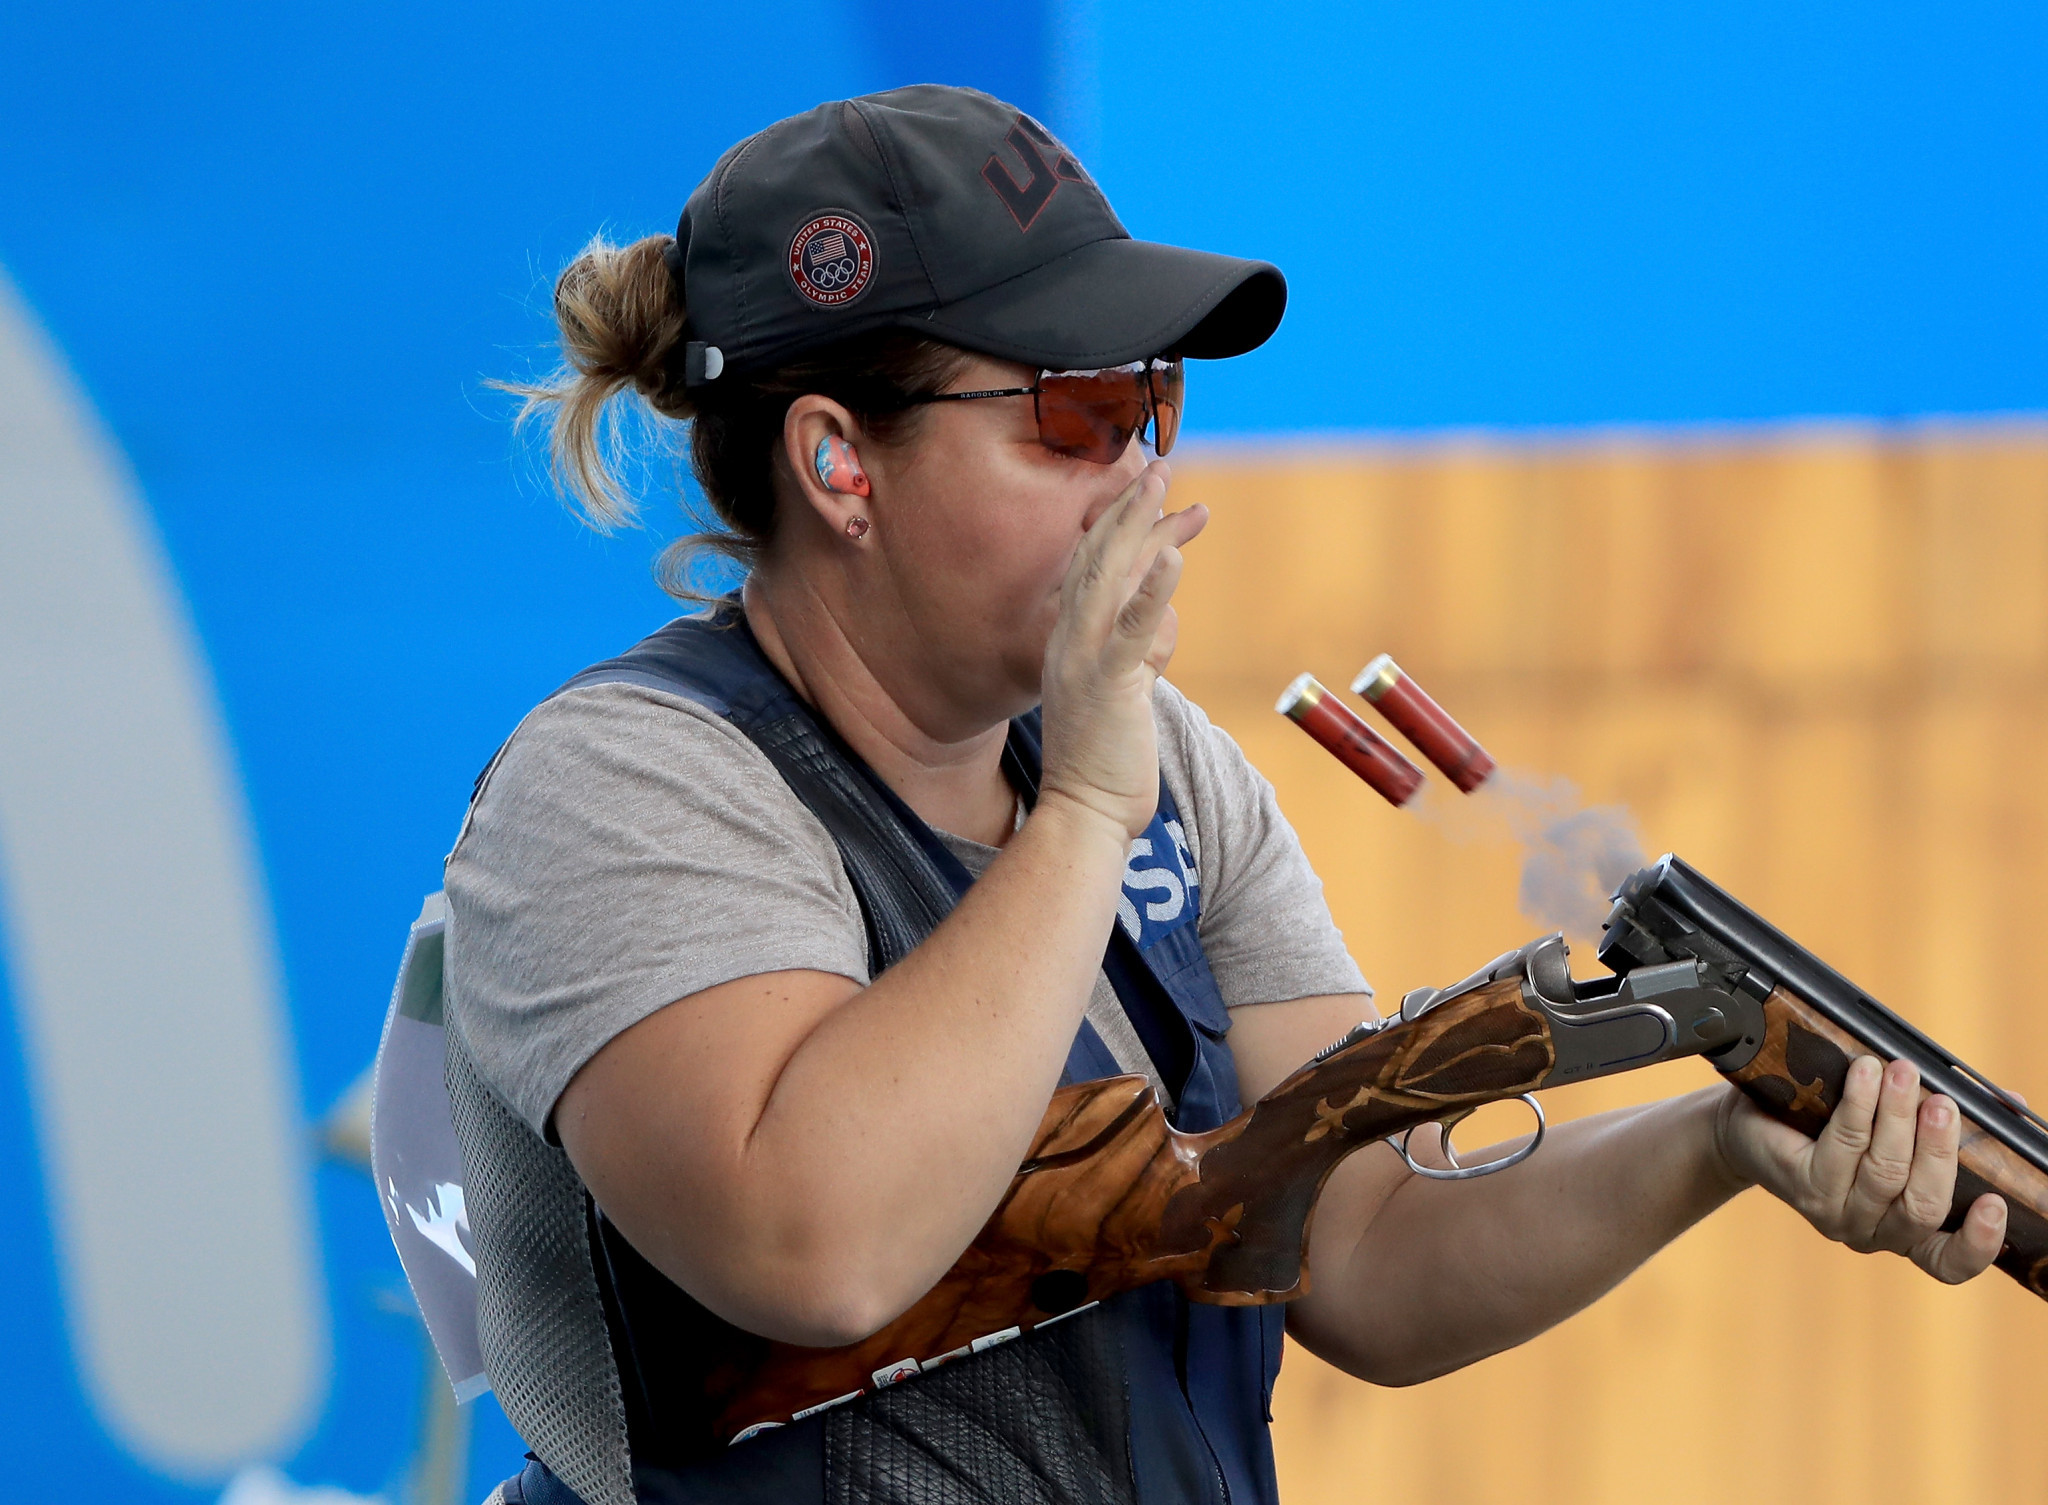 The United States' Kim Rhode will be aiming to defend her women's skeet title ©Getty Images